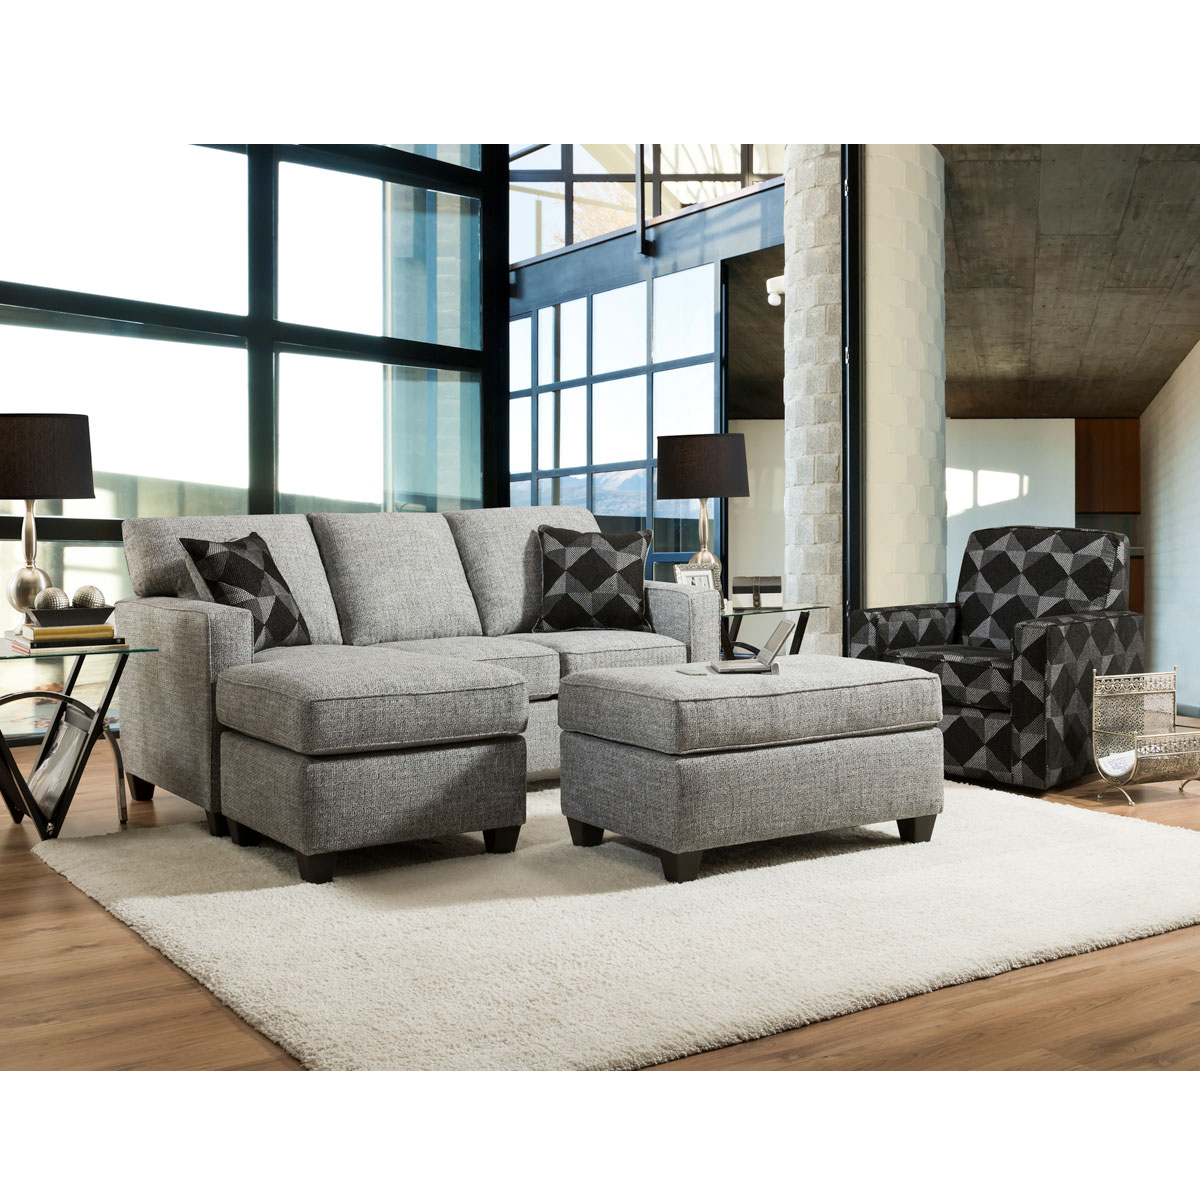 Ashville Sofa Chaise Cook Brothers, Cook Brothers Living Room Sets